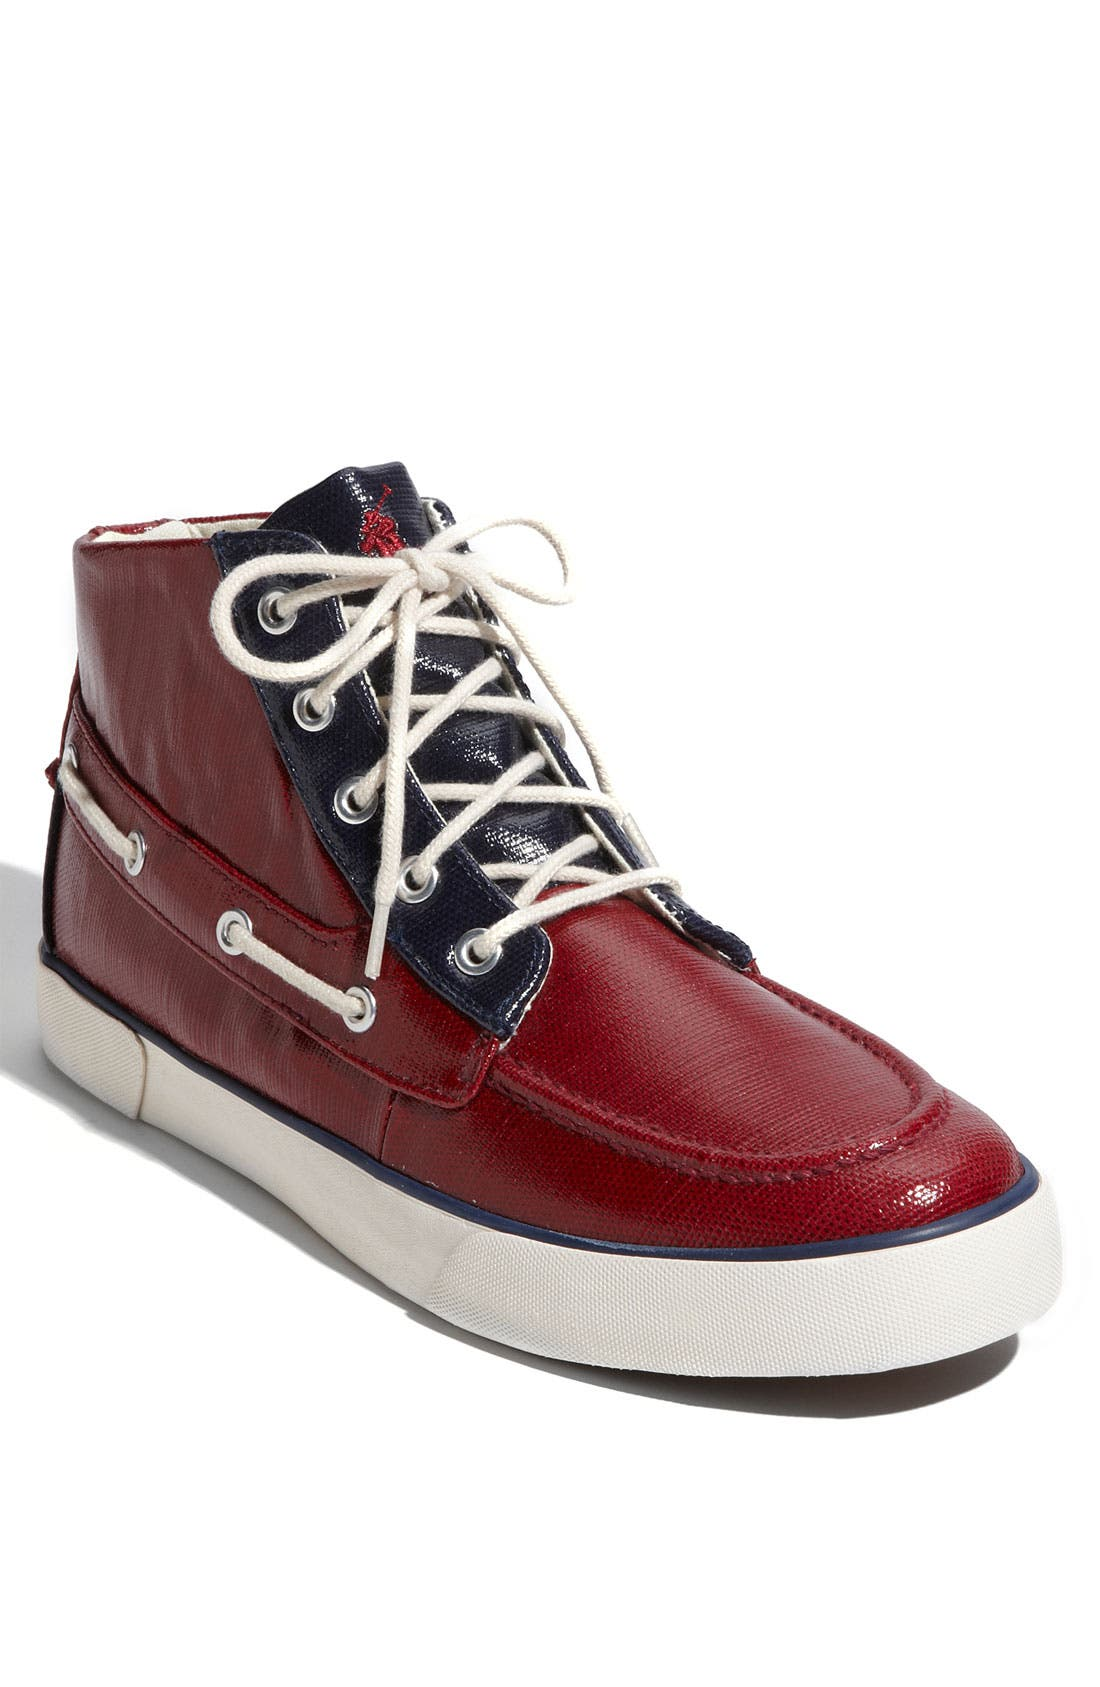 Alternate Image 1 Selected - Polo Ralph Lauren Chukka Sneaker